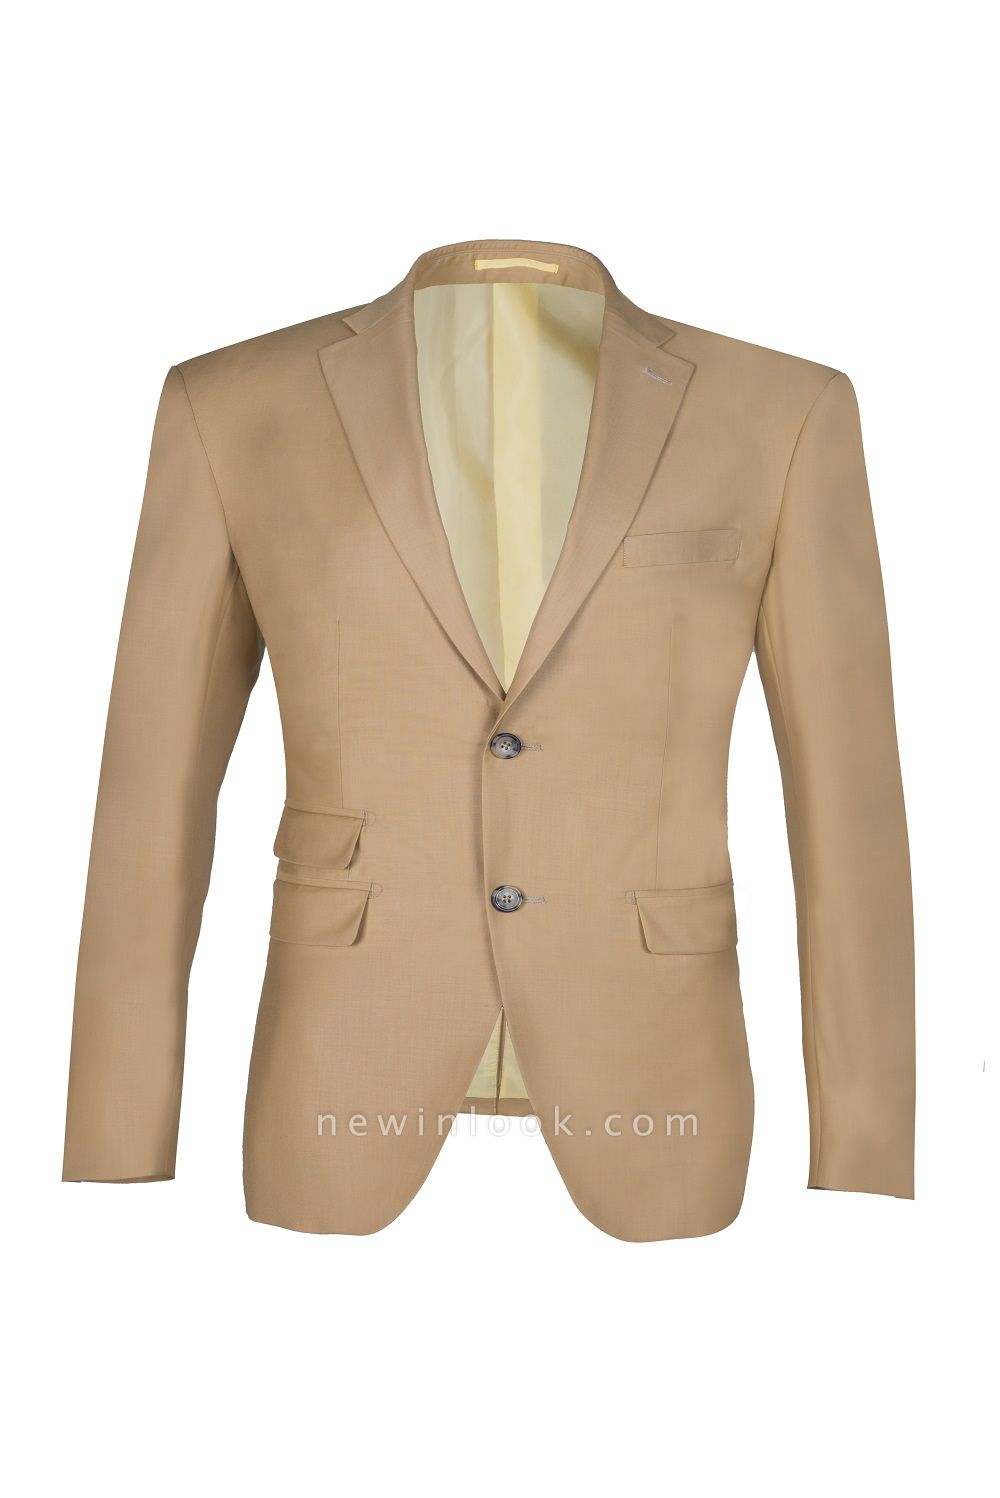 Latest Design Two Button Nude Color Peak Lapel Chambelanes Chambelanes Tuxedos